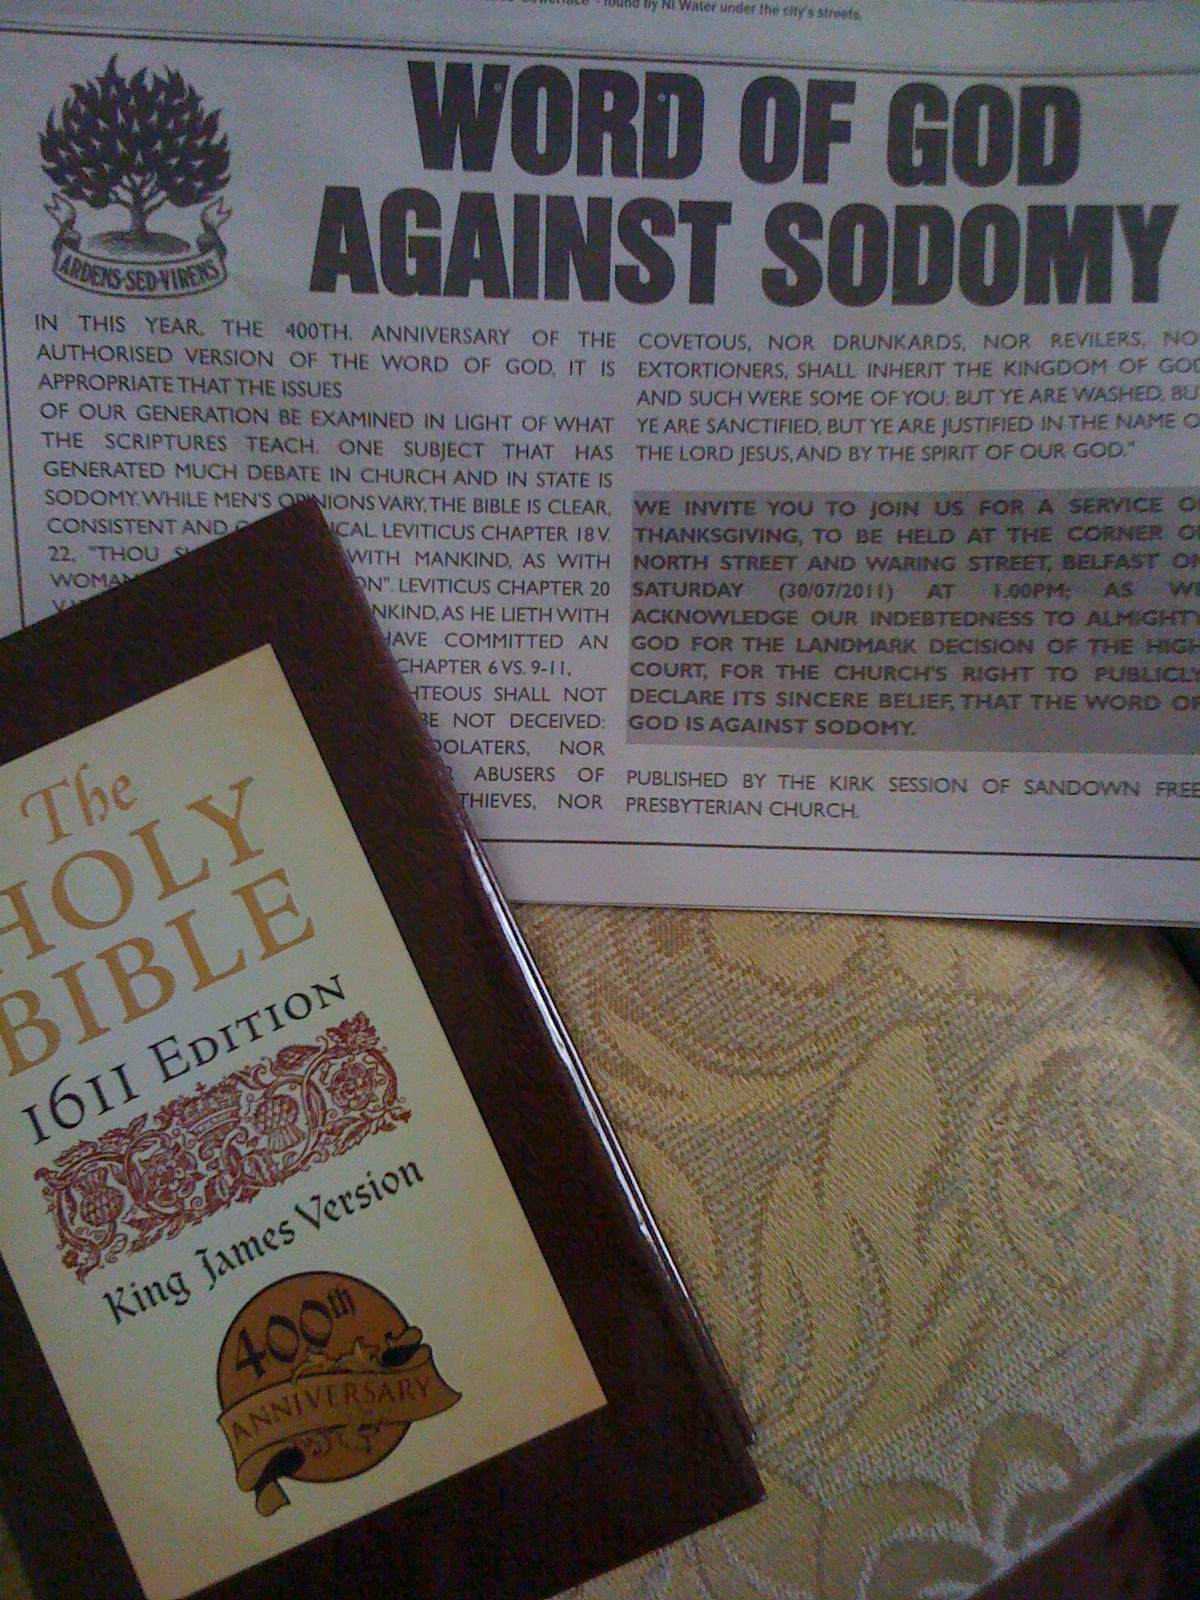 Photo of advertisement in Belfast News against Sodomy